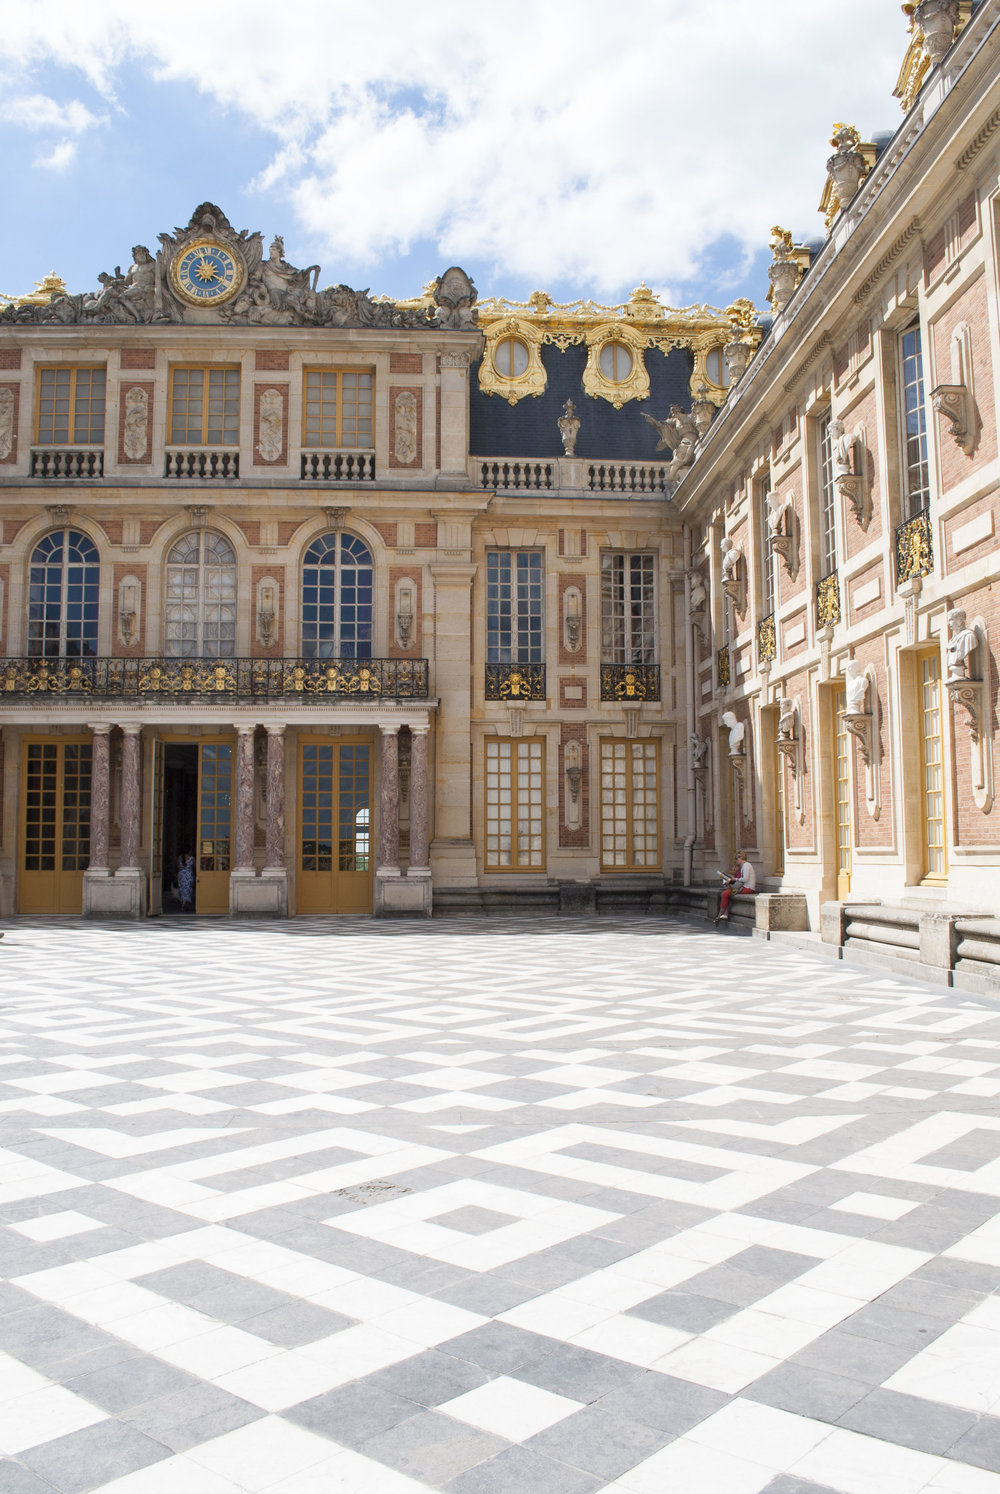 The entrance to Château de Versailles.